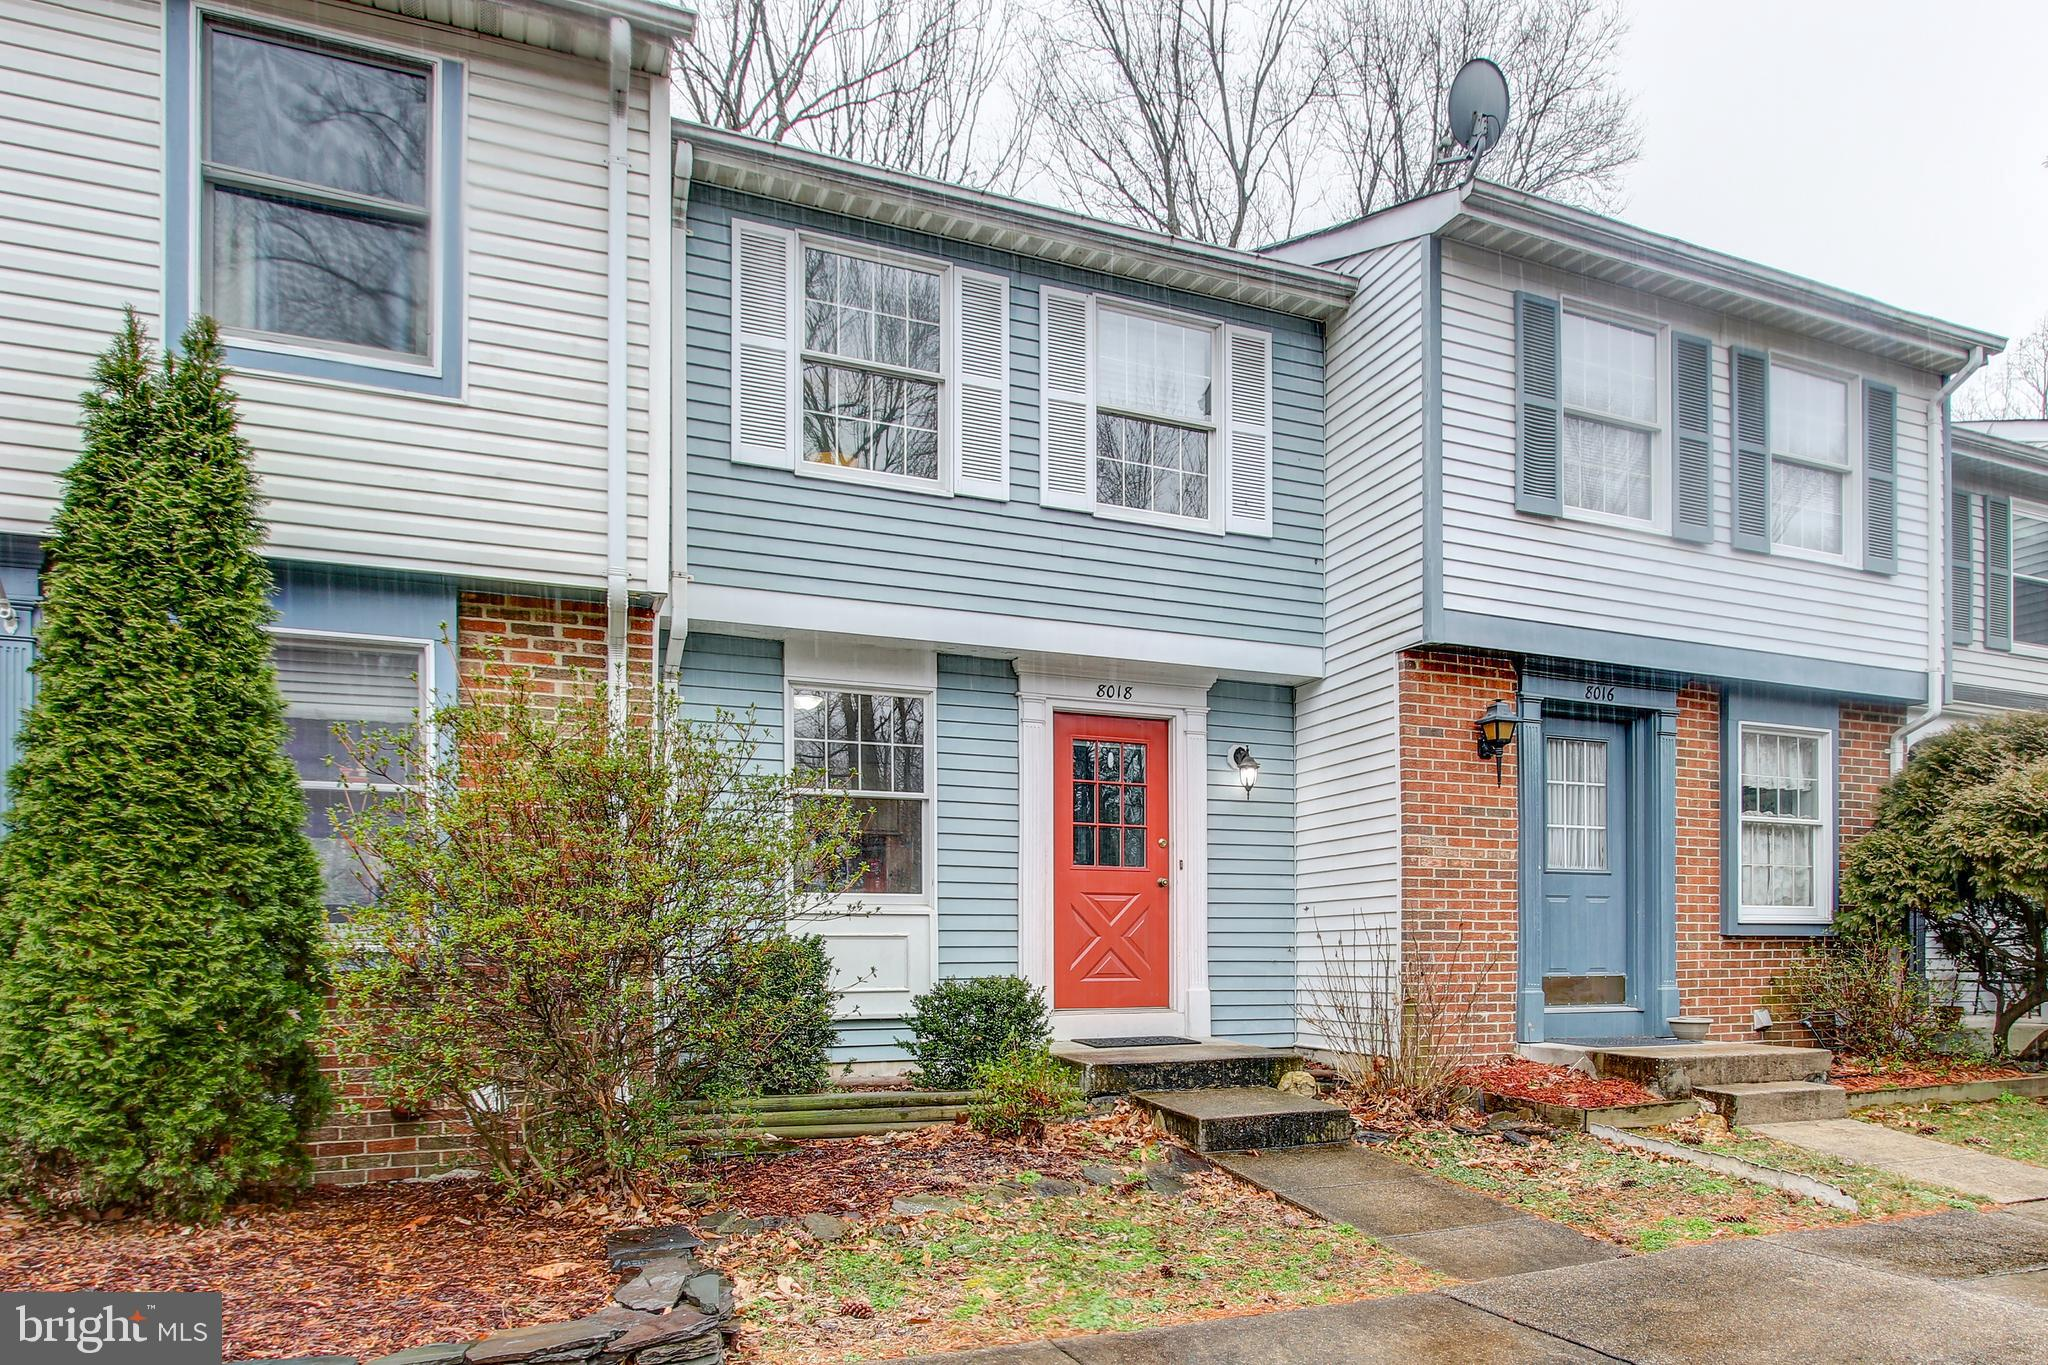 Great home ownership opportunity! Sun filled 3 level townhouse in convenient location close to shops, dining, entertainment and transportation. 2BRs/1.5BAs w/spacious kitchen, dining room. Basement walks out to patio and storage shed. Property backs to trees and close to tot lots and walking trails.